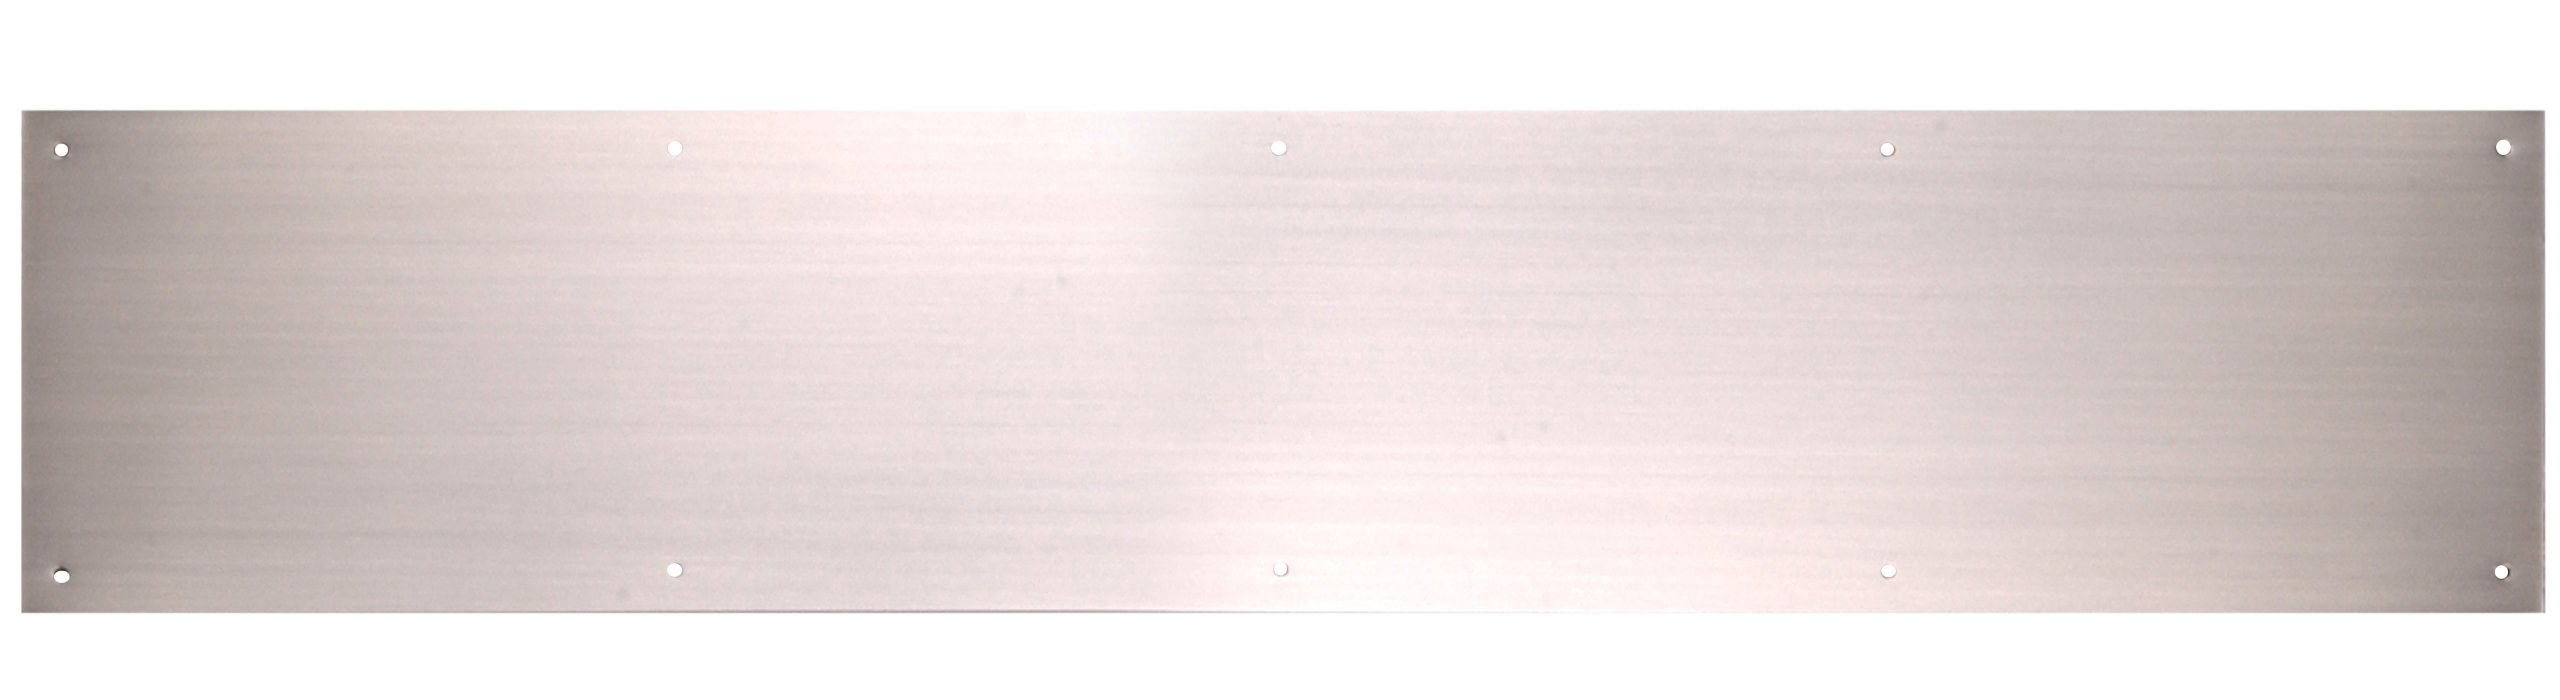 The Hillman Group 852742 6 x 30'' Aluminum Kick Plate - Satin Nickel Finish 1-Pack